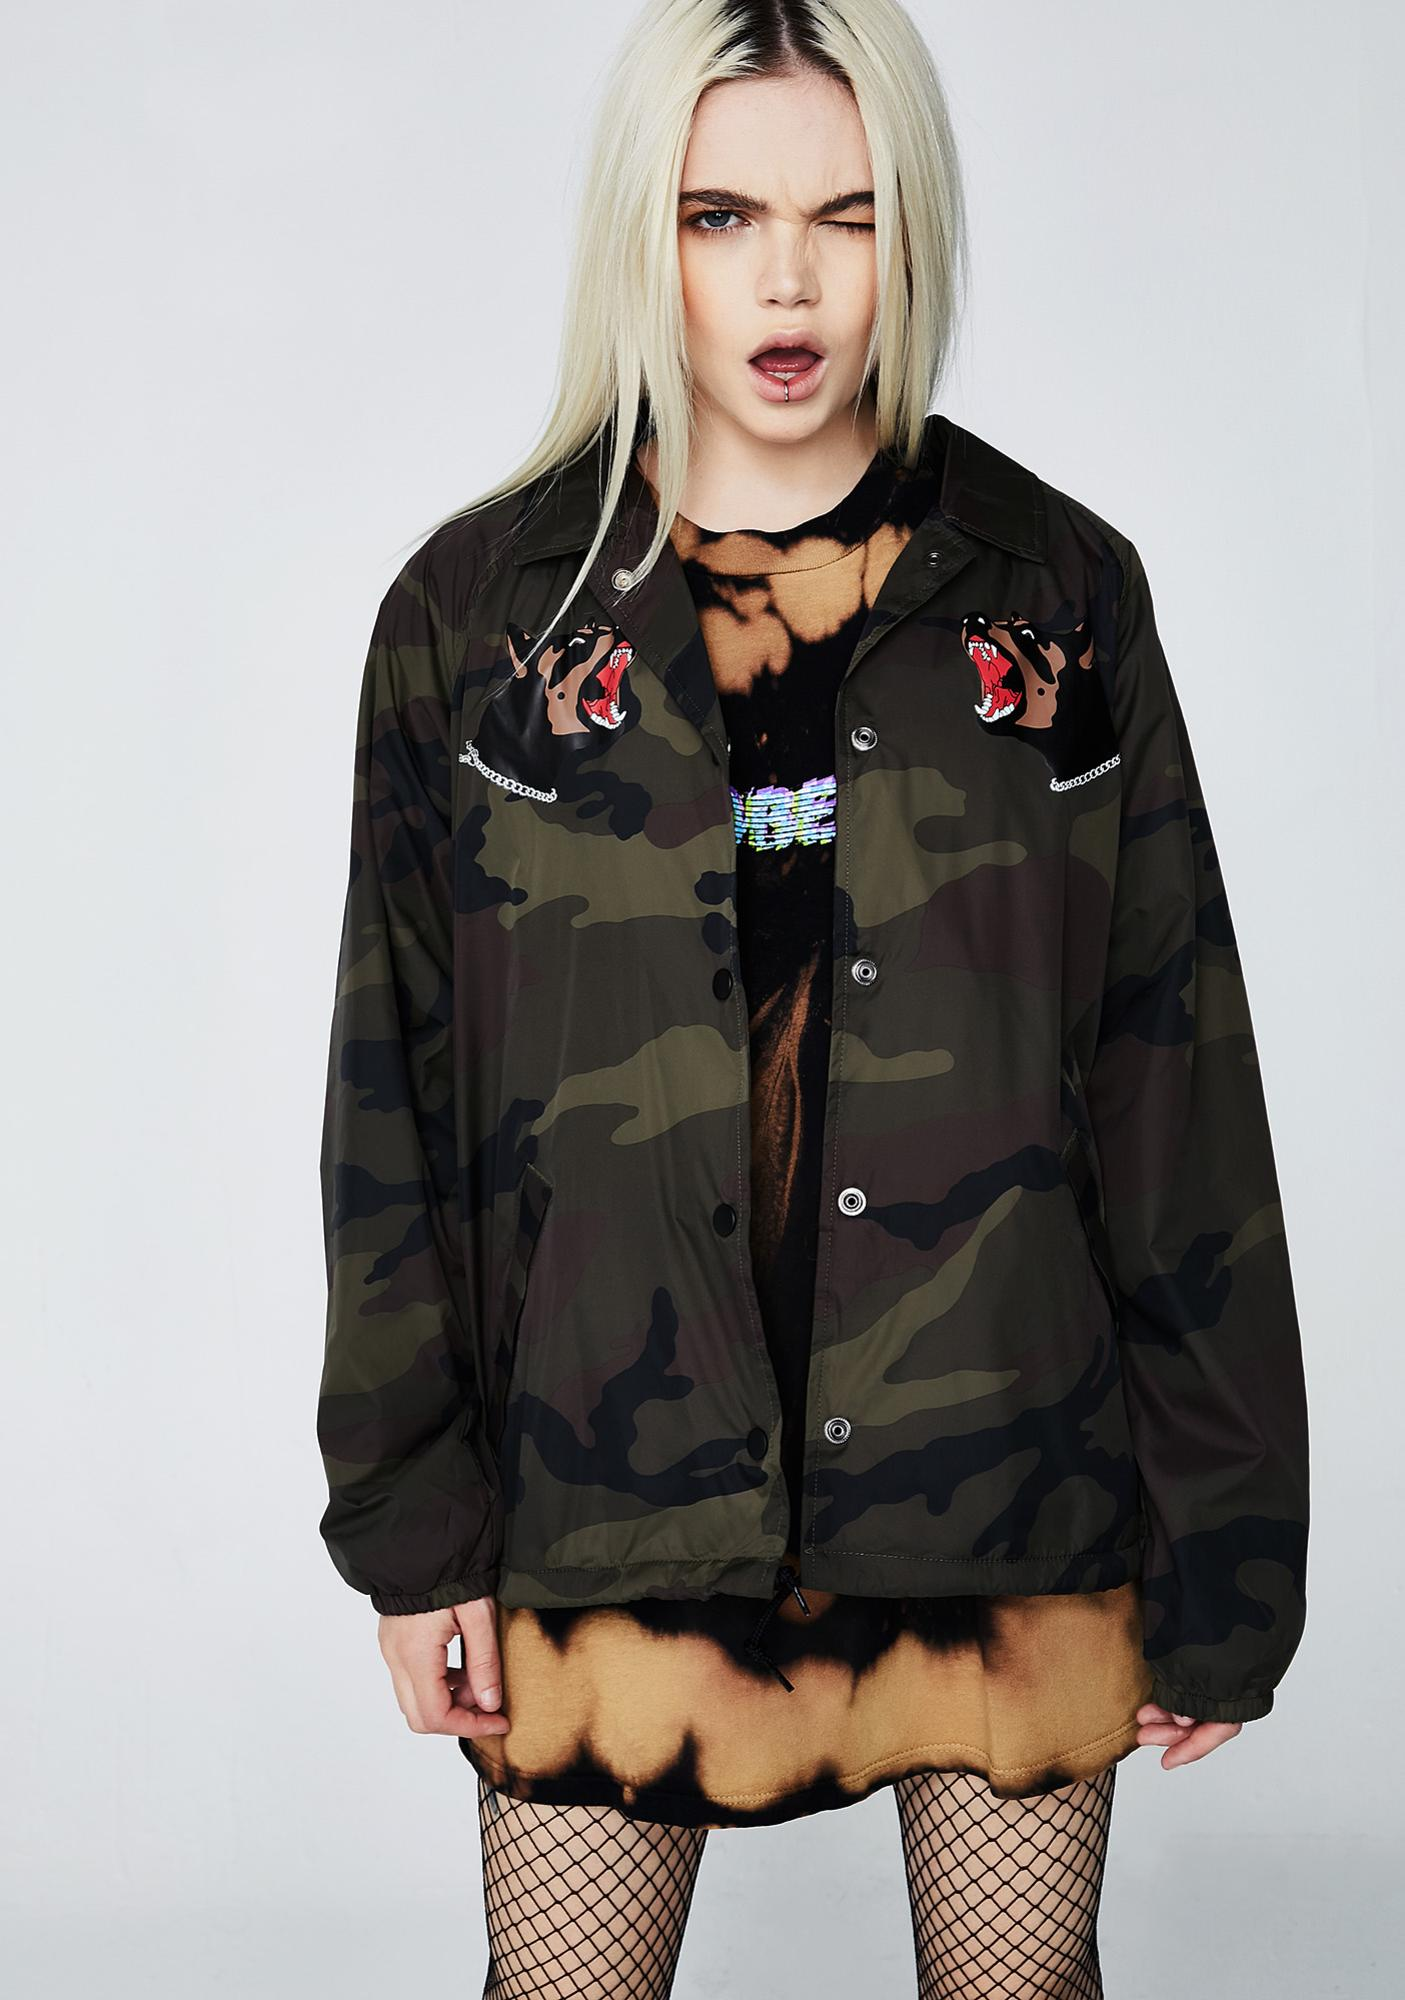 Obey Off The Chain Coach Jacket